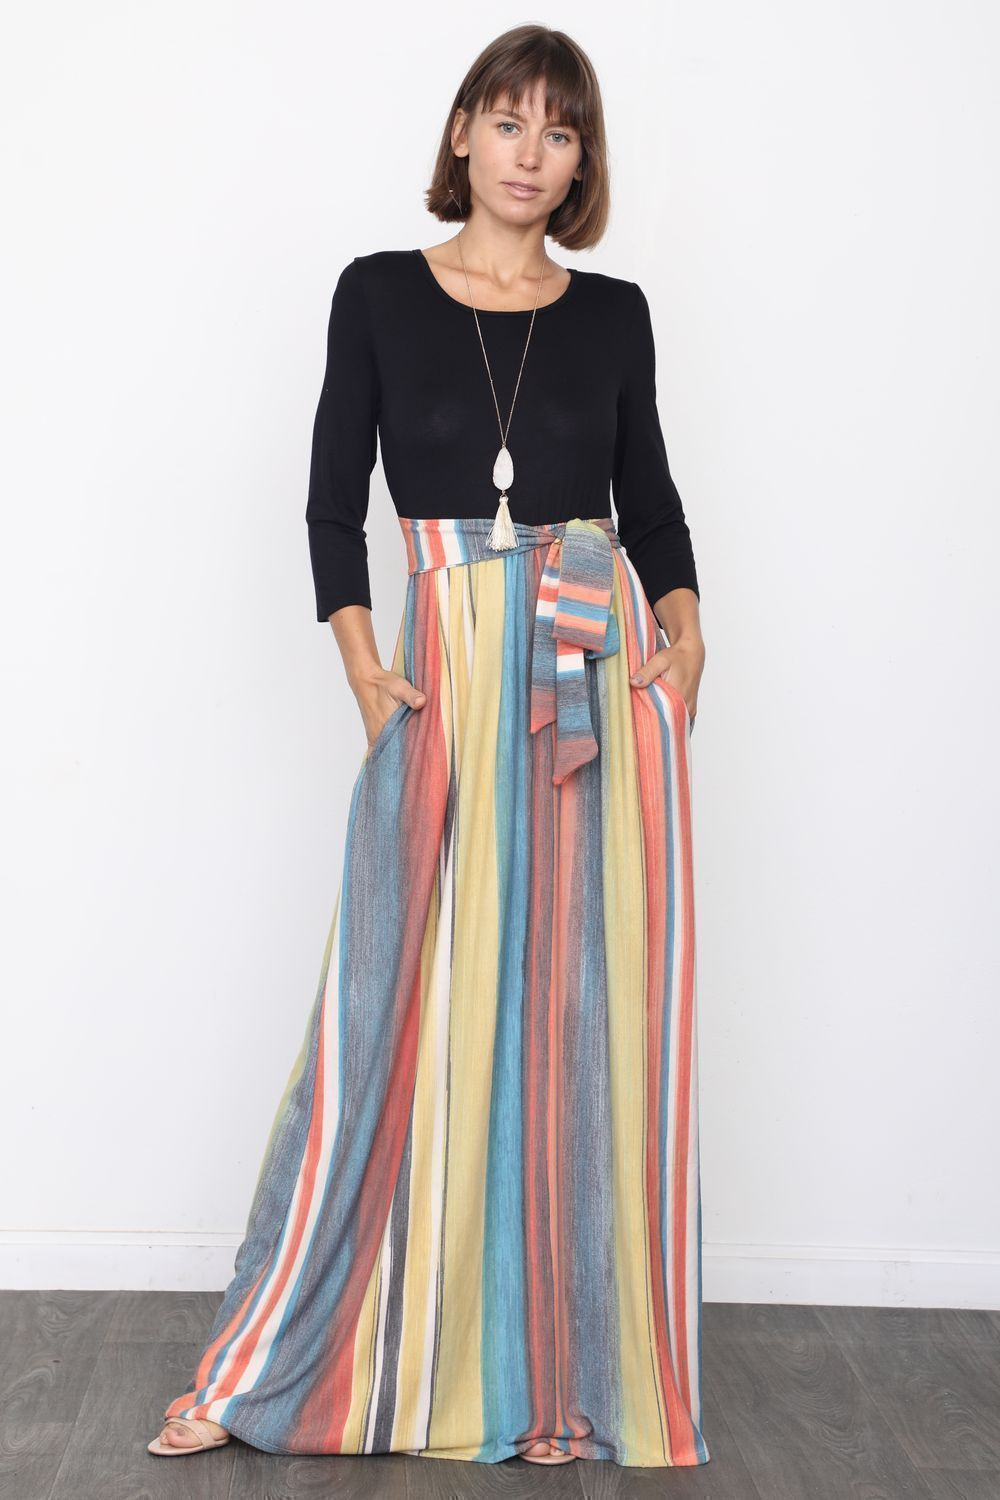 Orange & Teal Multi Color Sash Maxi Dress